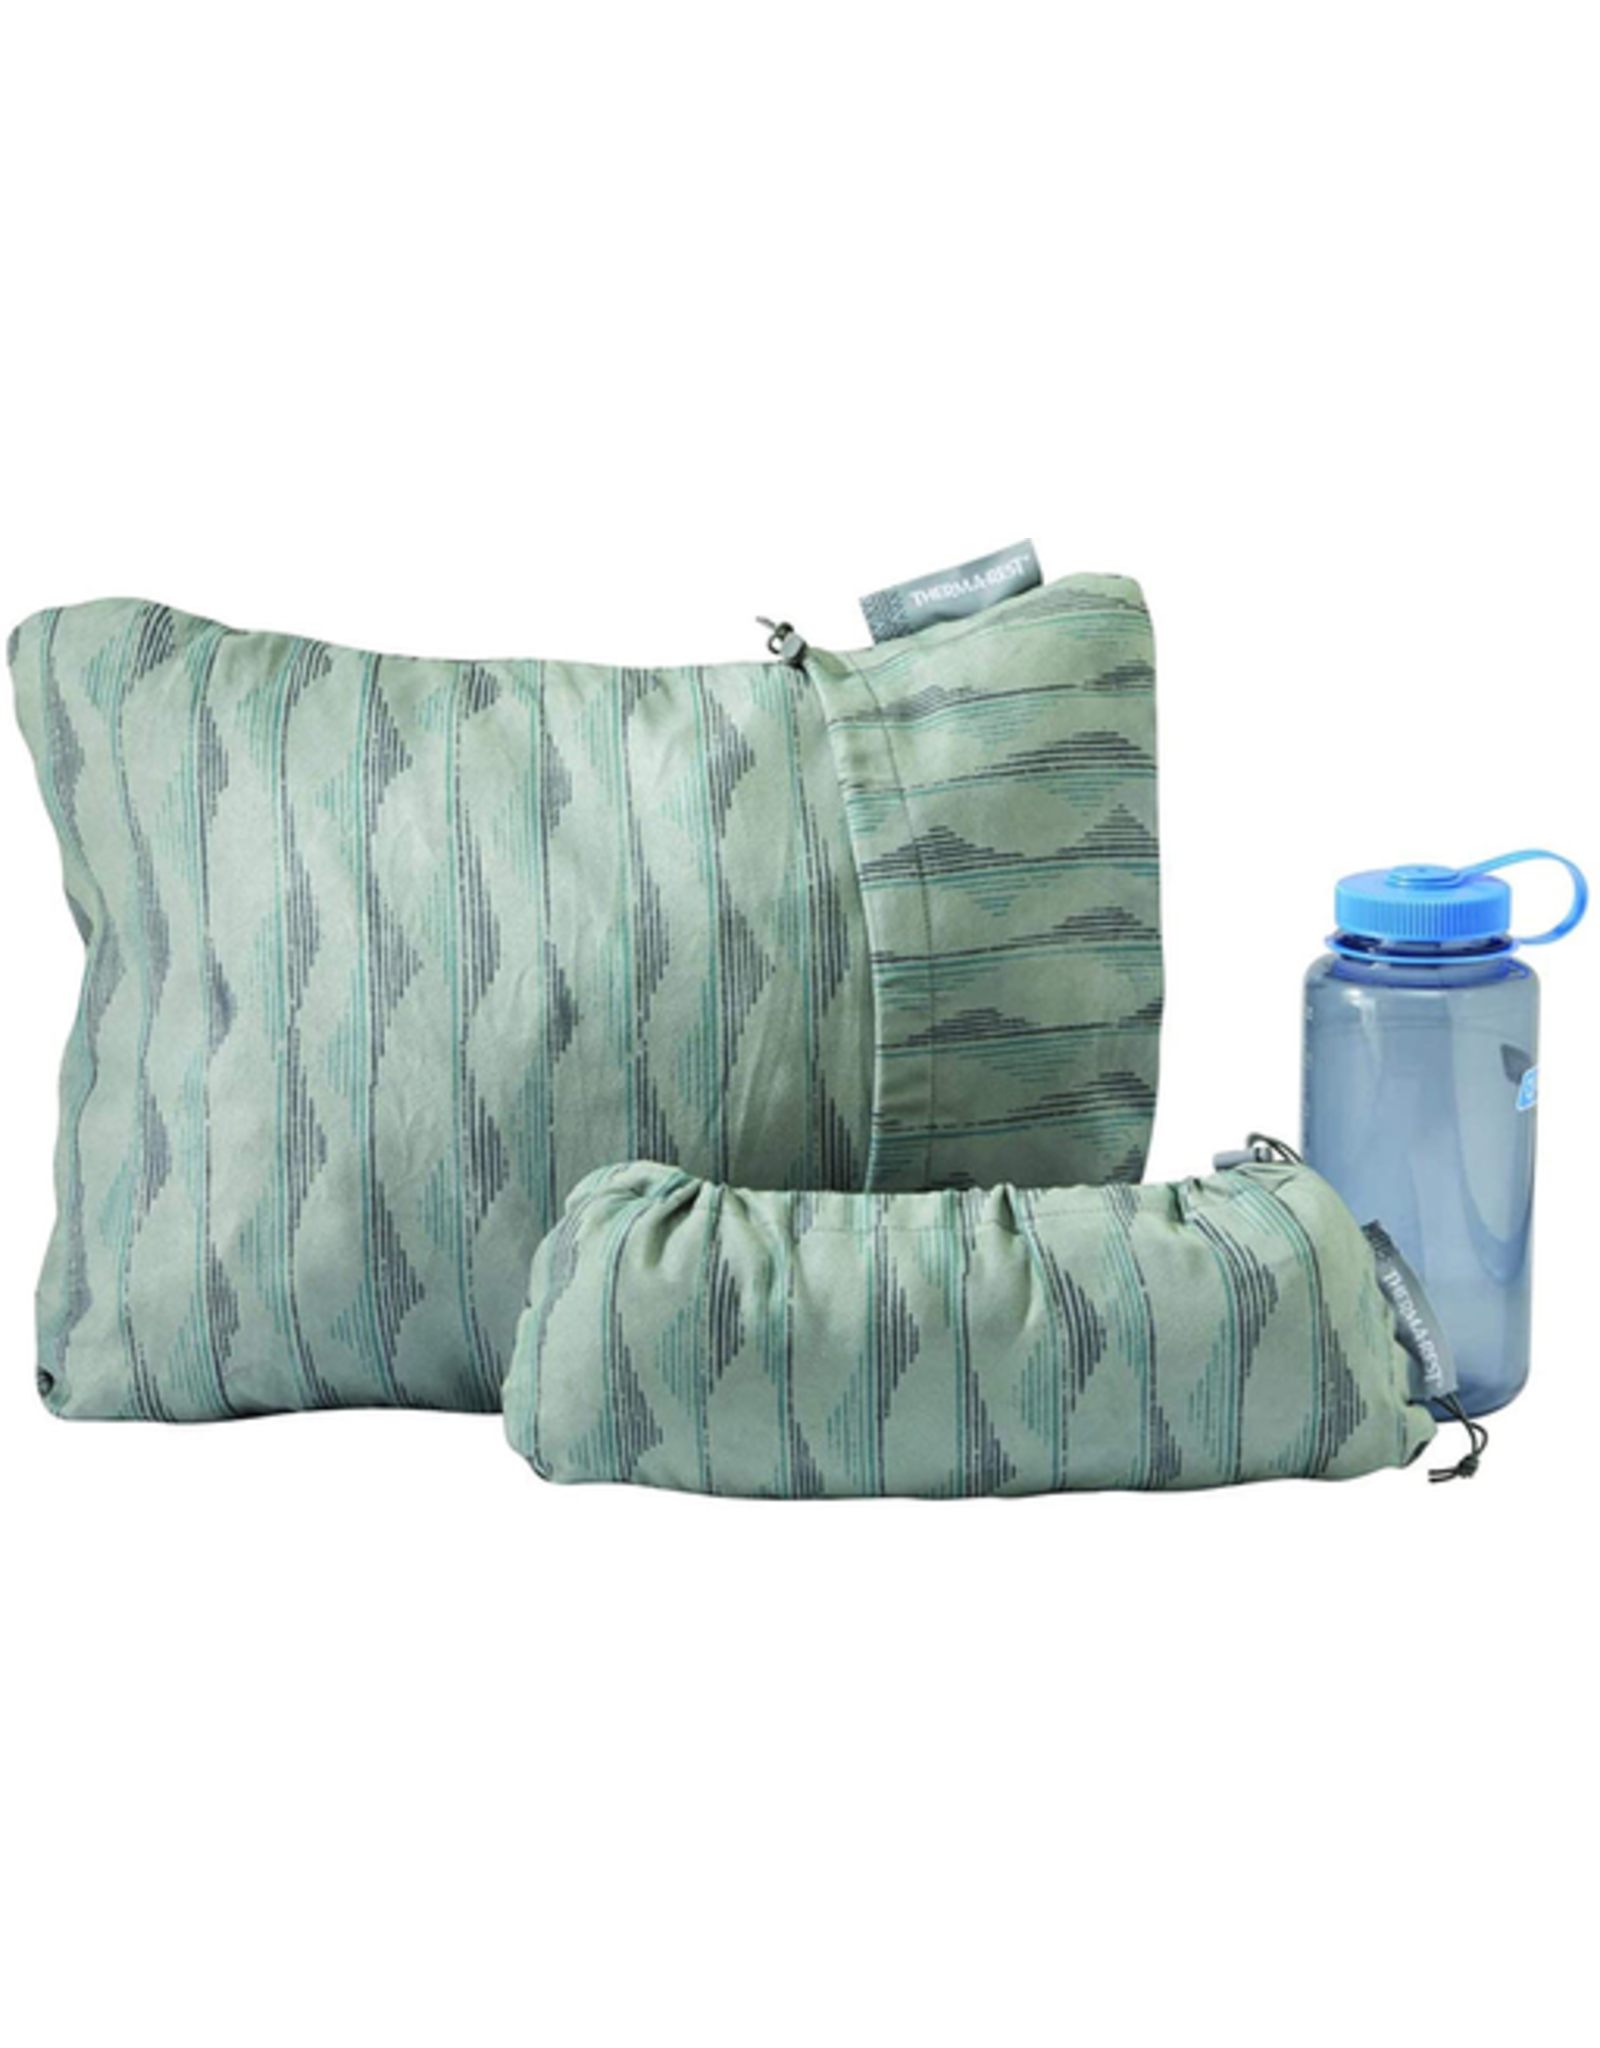 Thermarest Thermarest Compressible Pillow, Large, Gray Mountians